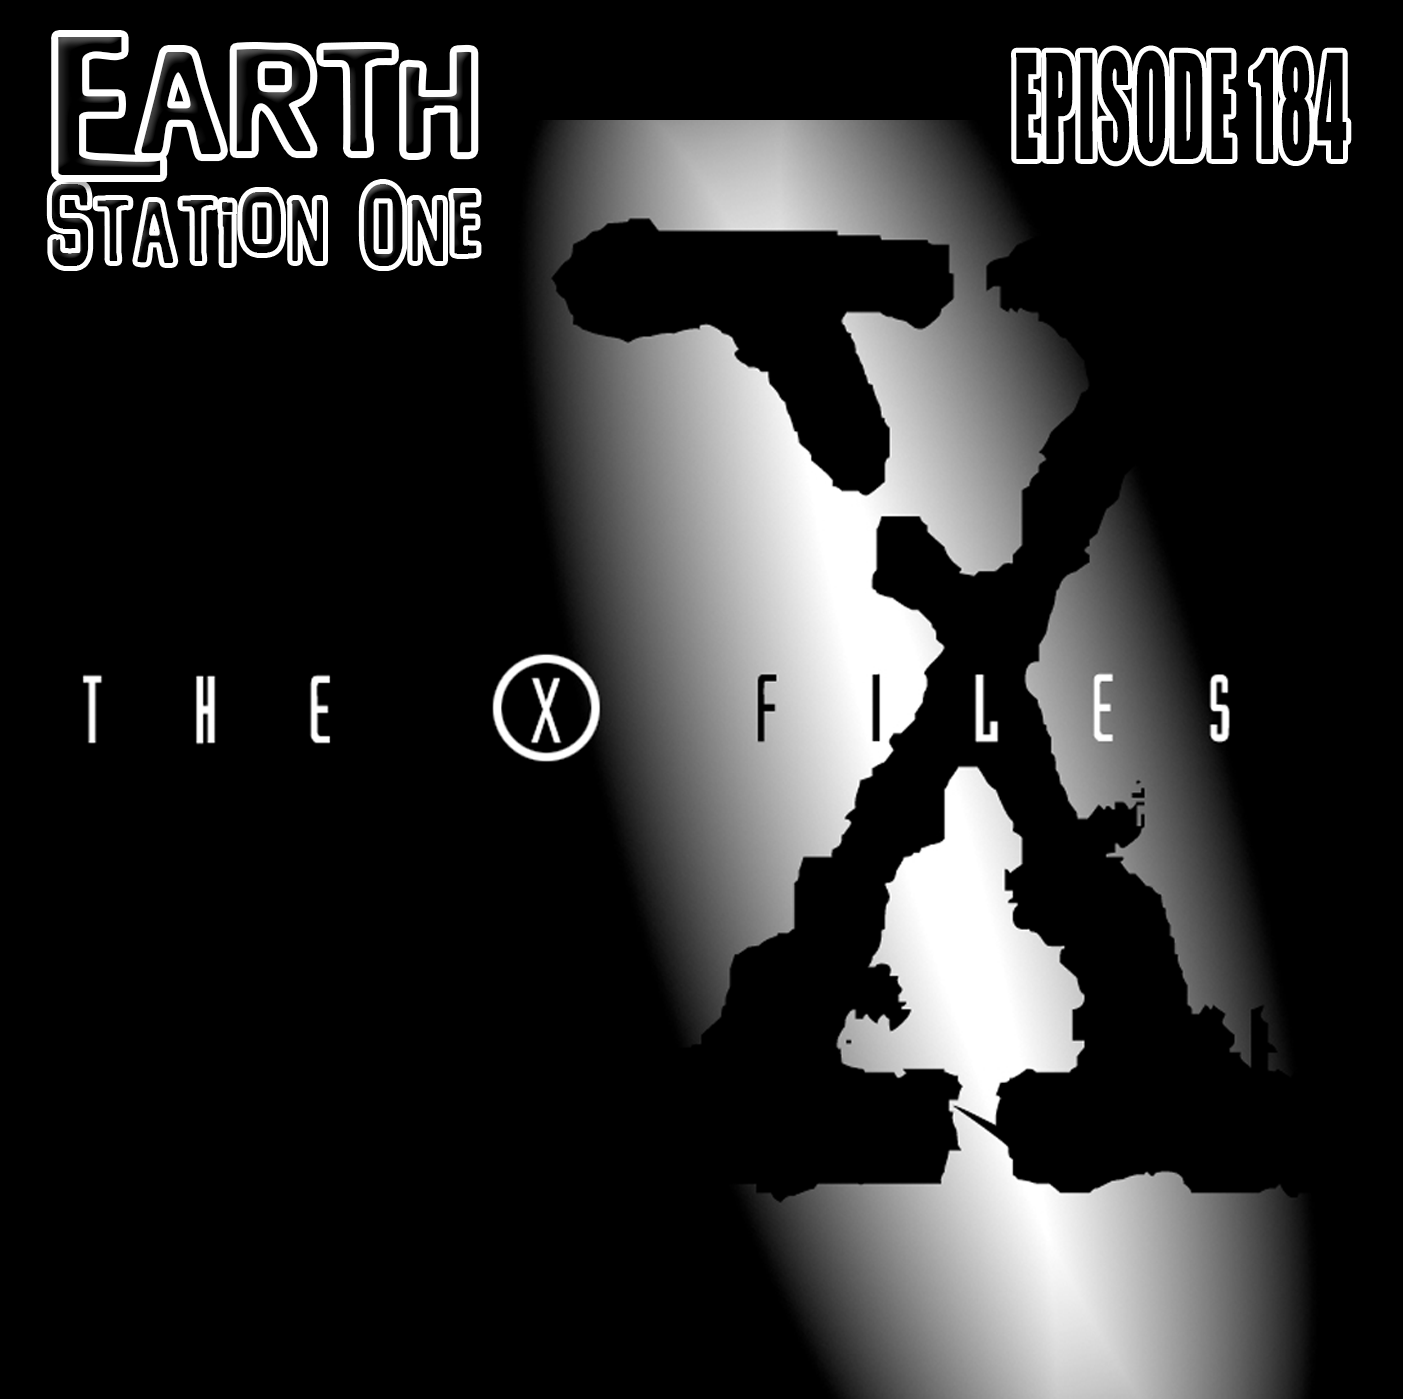 Earth Station One Ep 184